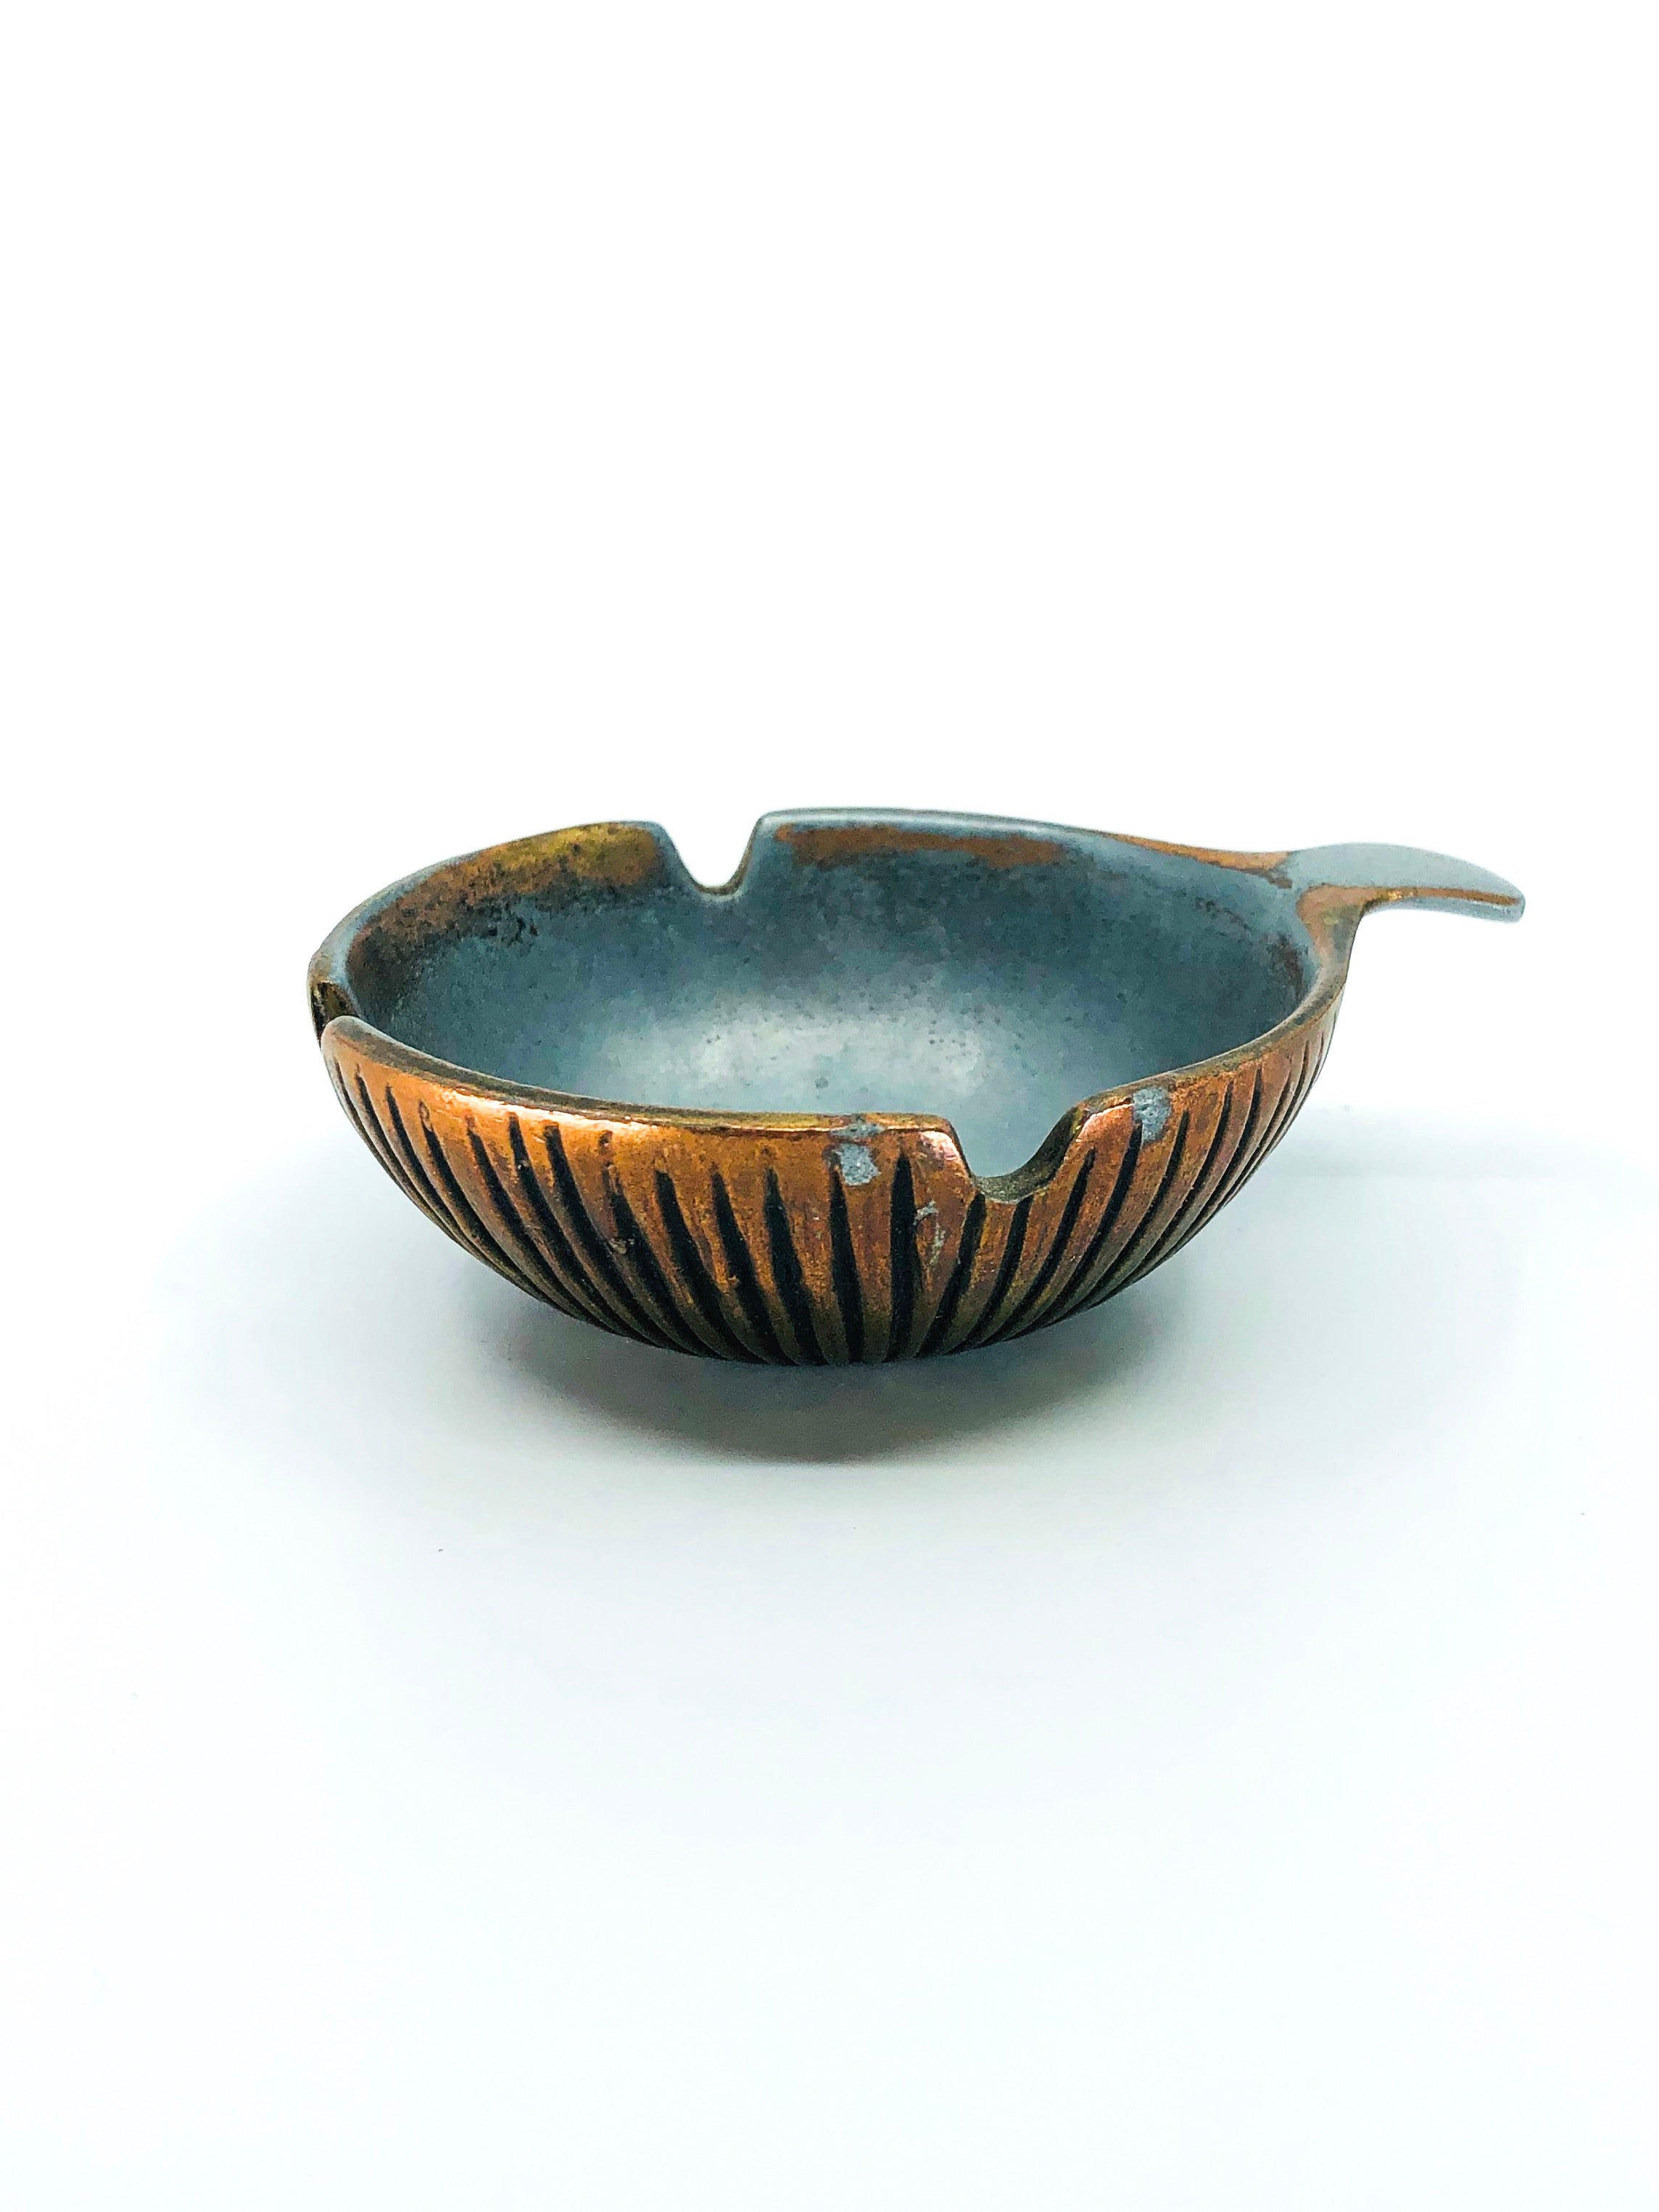 Ben Seibel Style Copper Coated Ashtray